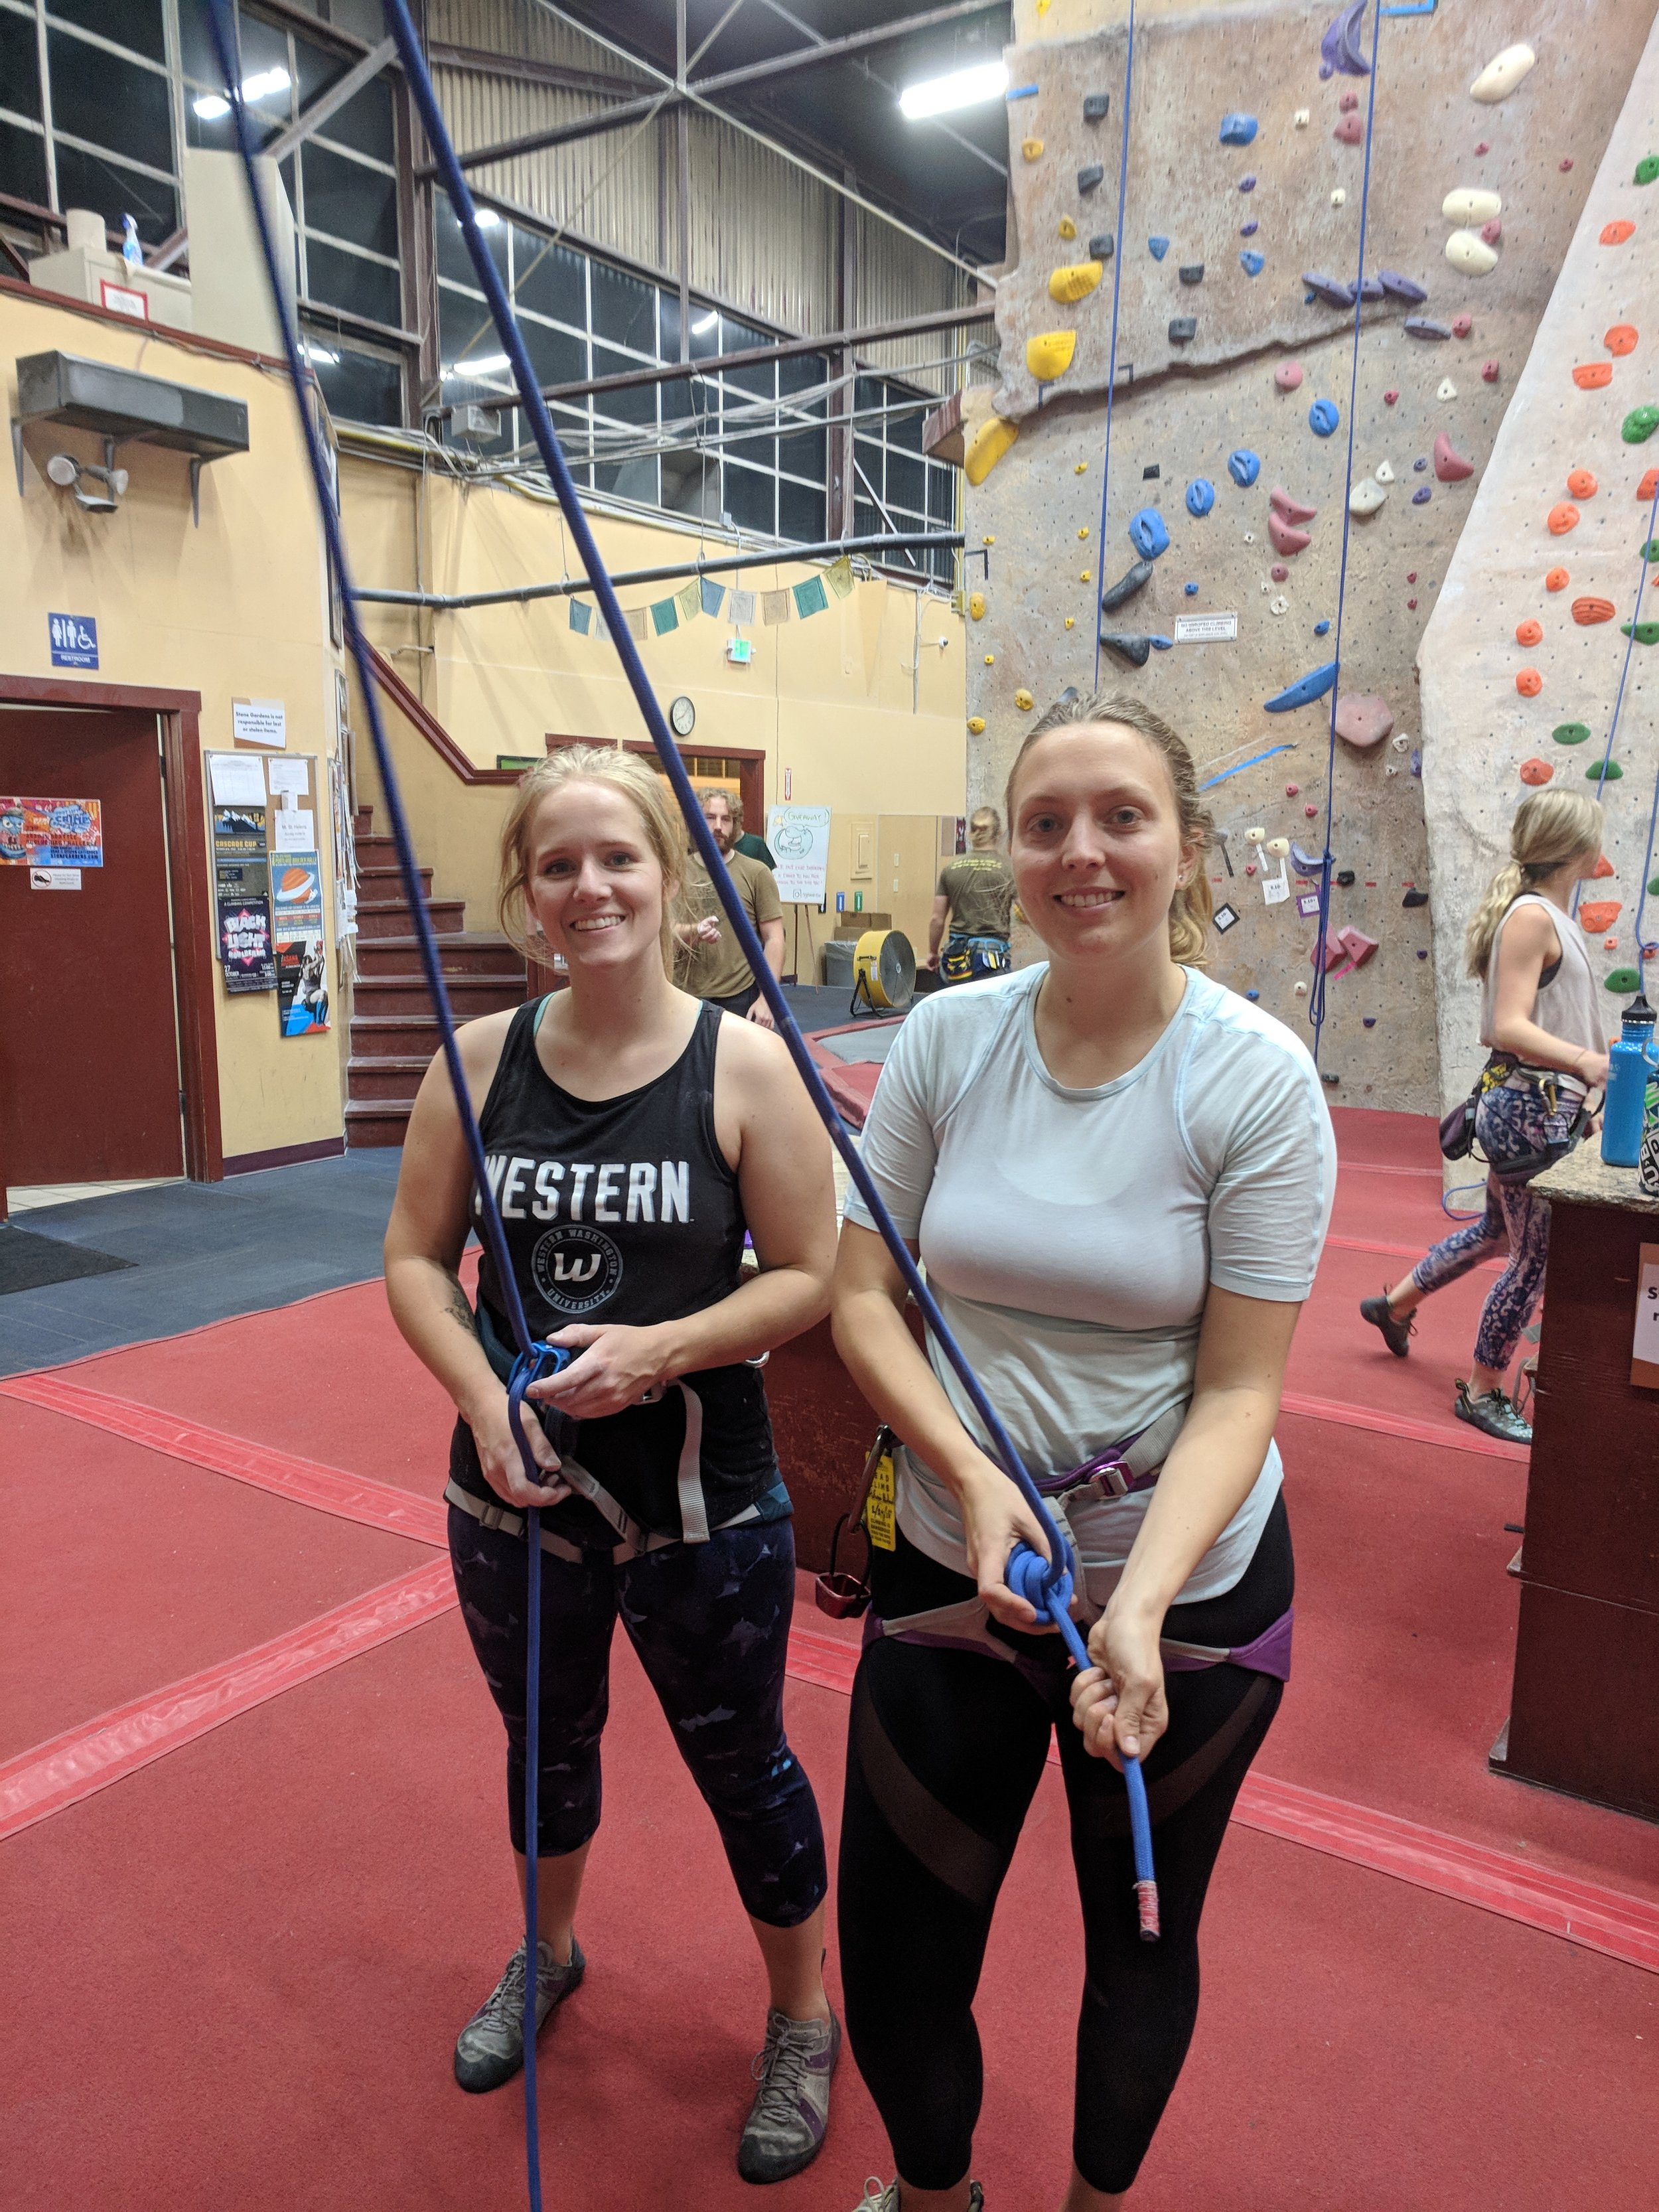 Kayla and Stefanie climbing together during a Training For Climbing Club night after performing their active stretches! Photo by Megan Fritz